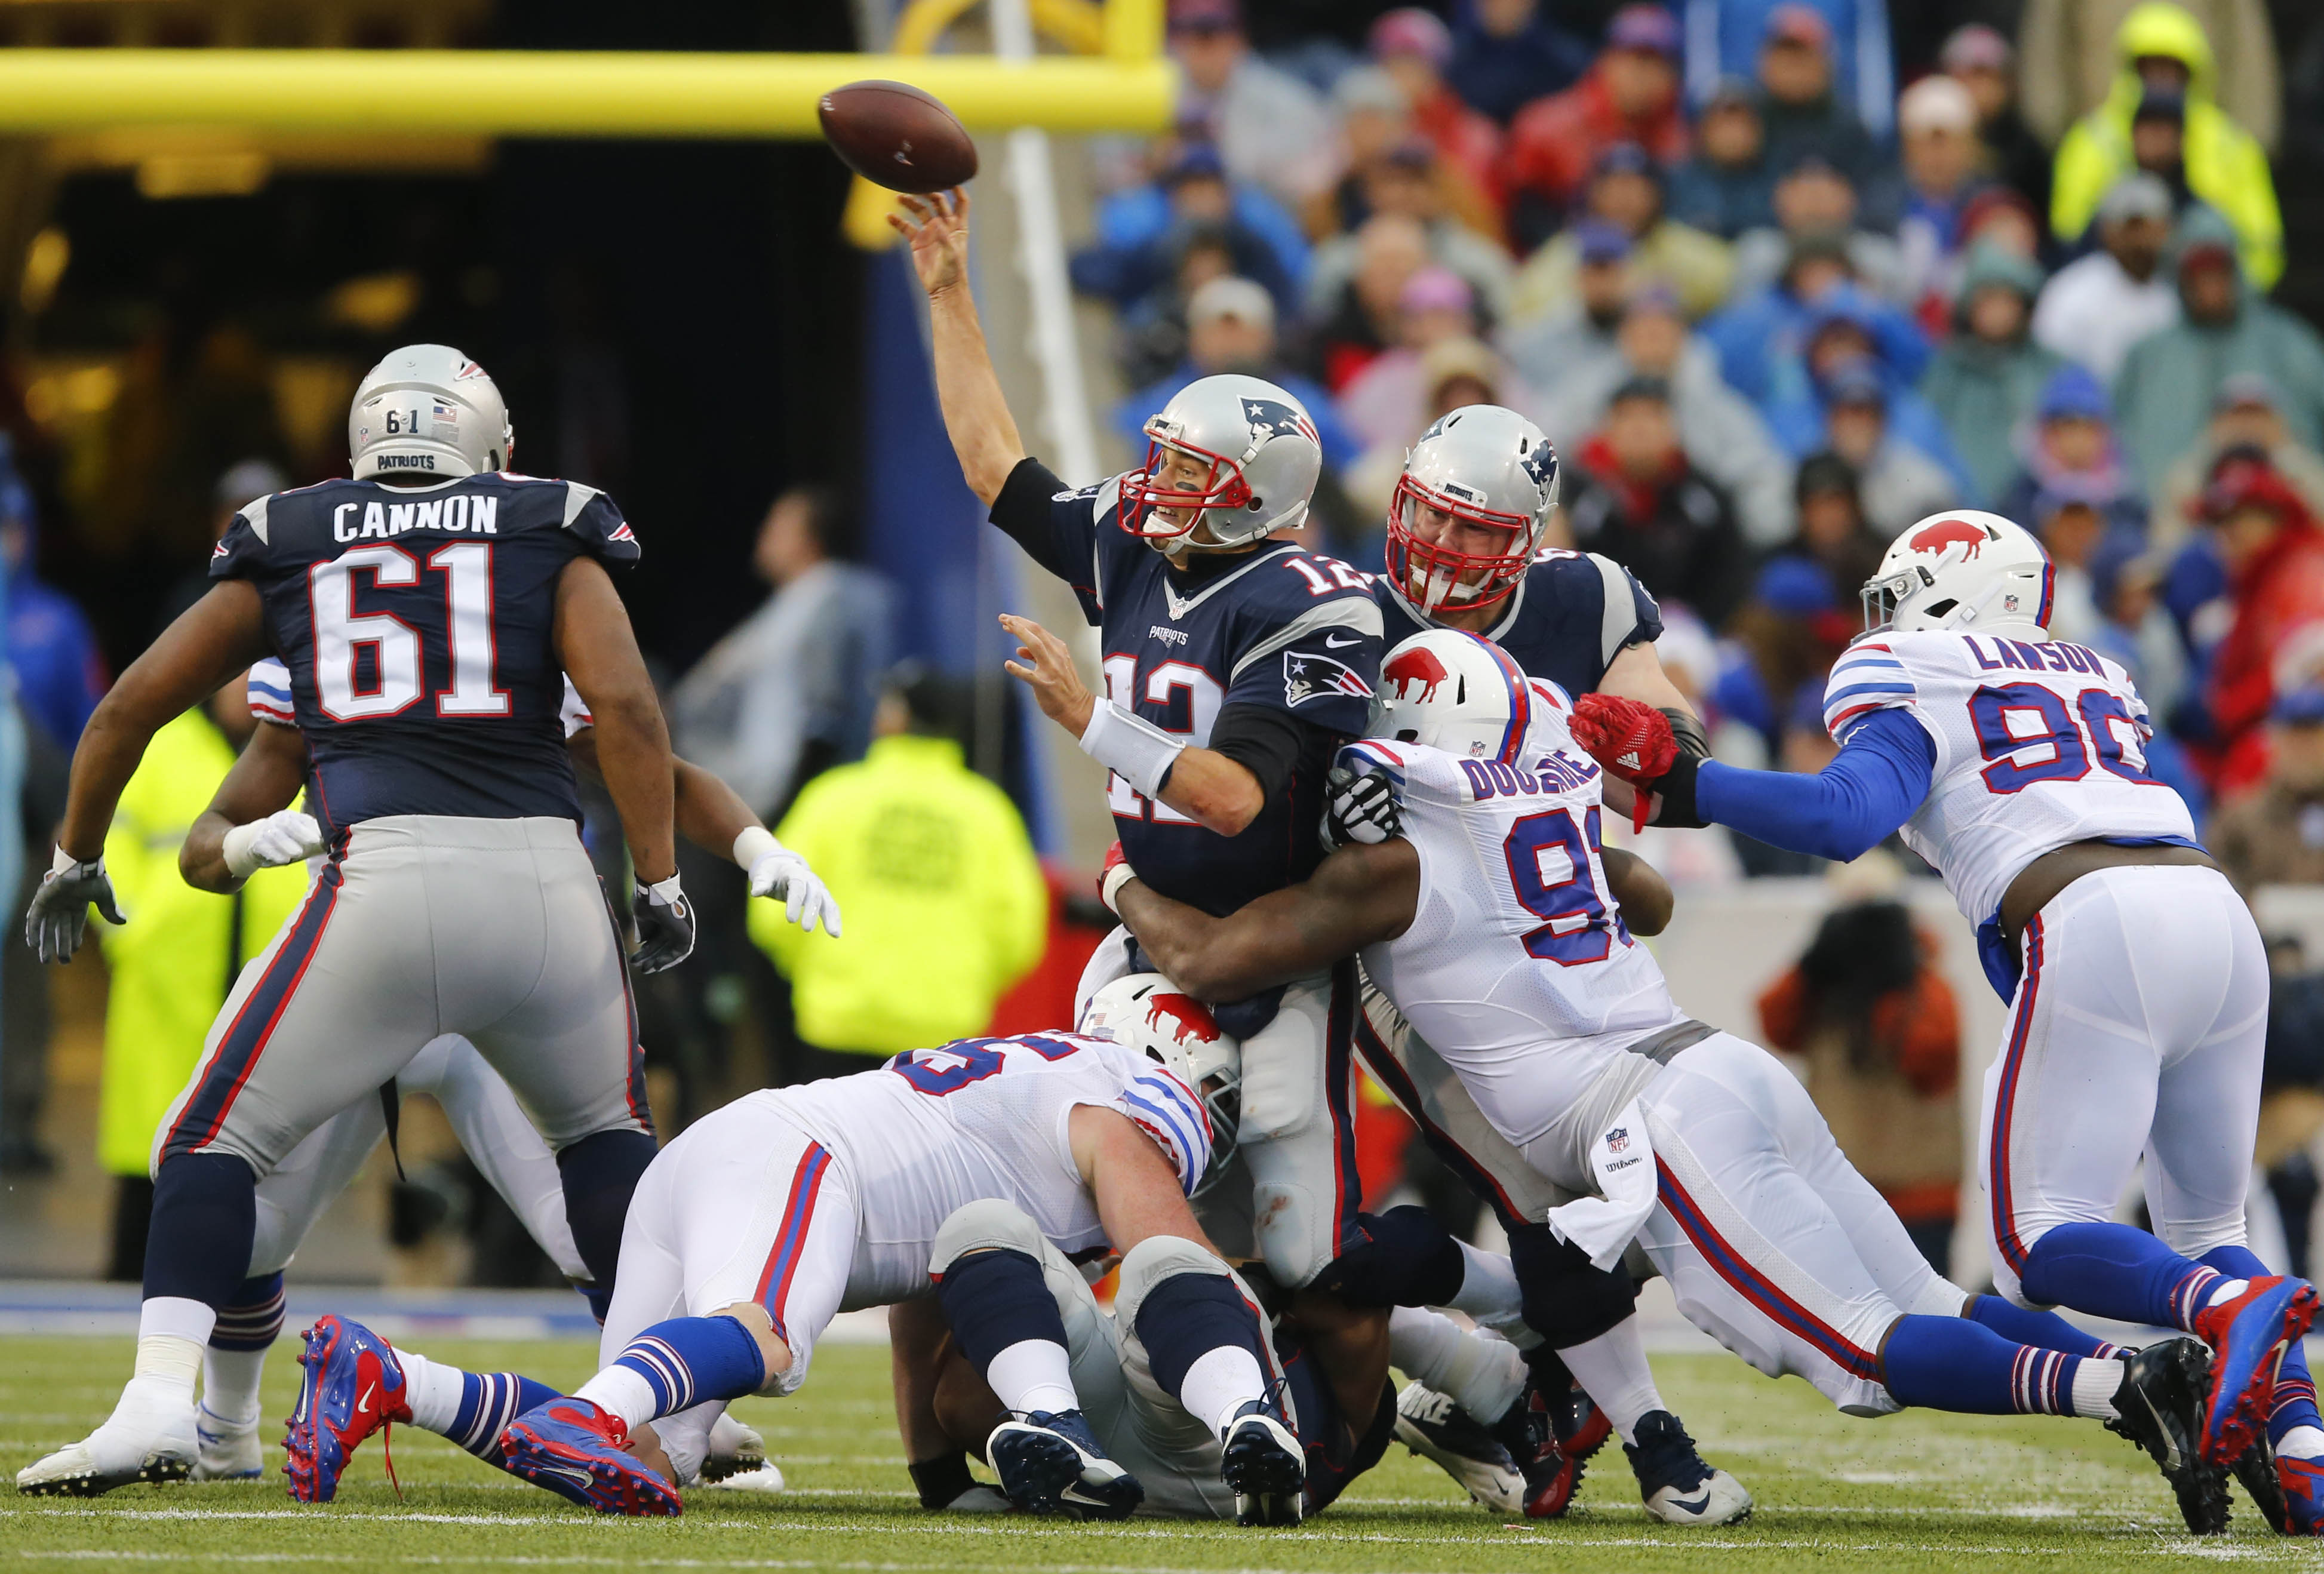 New England Patriots quarterback Tom Brady (12) throws the ball as he is hit by Buffalo Bills' Leger Douzable (91) during the second quarter. (Mark Mulville/Buffalo News)